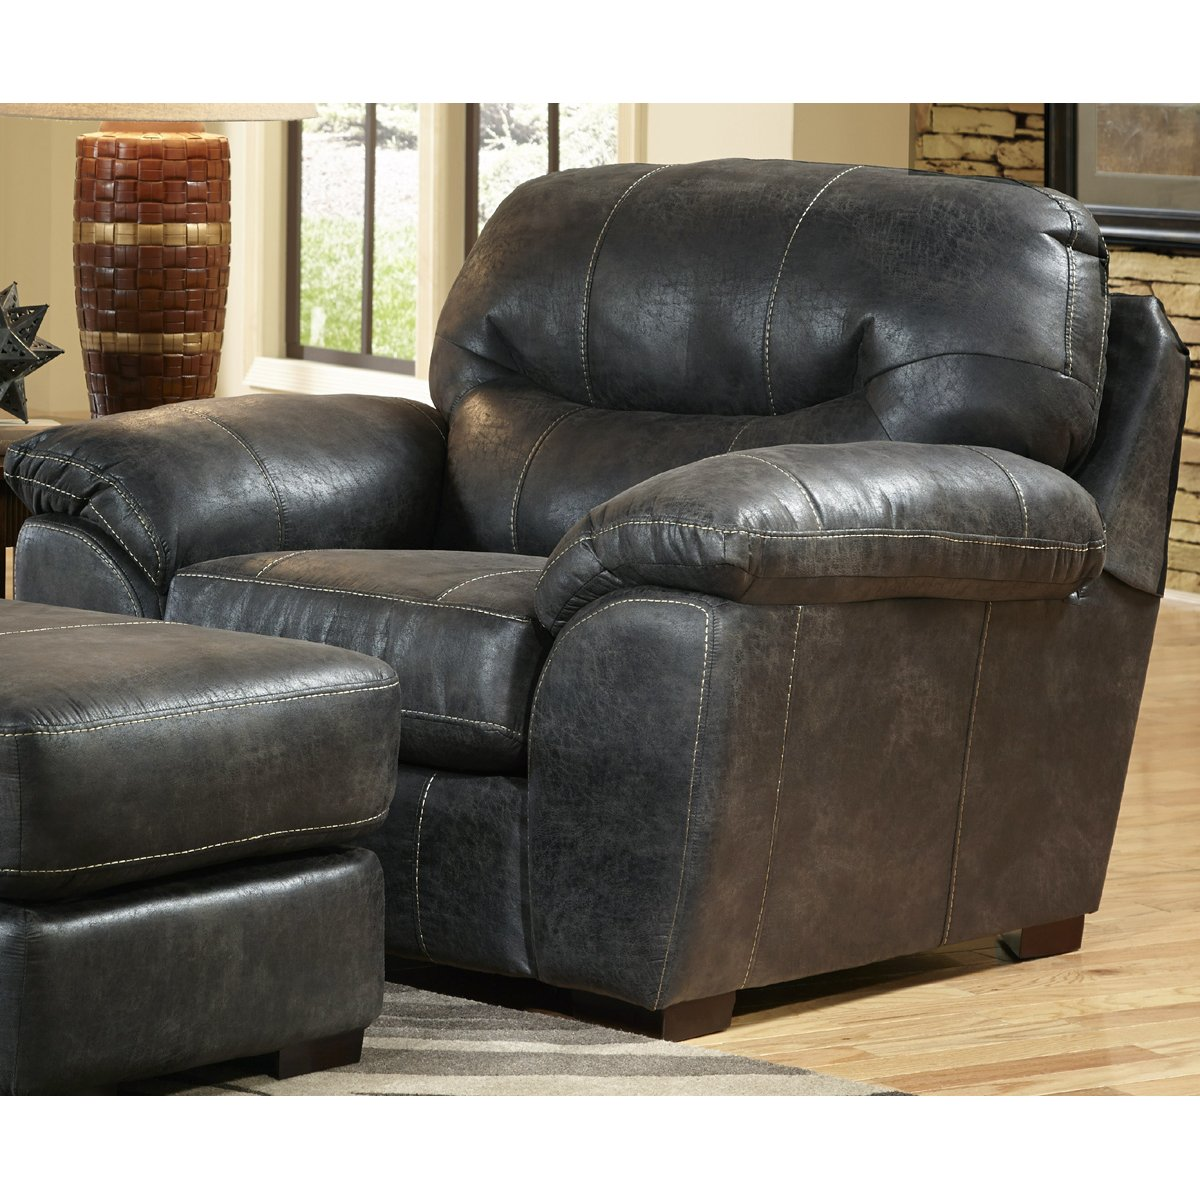 swivel recliner chairs for living room 2. Chocolate Brown Rocker Recliner  Cossette24999 Casual Contemporary Steel Gray Chair Grant RC Willey sells living room chairs recliners for your den